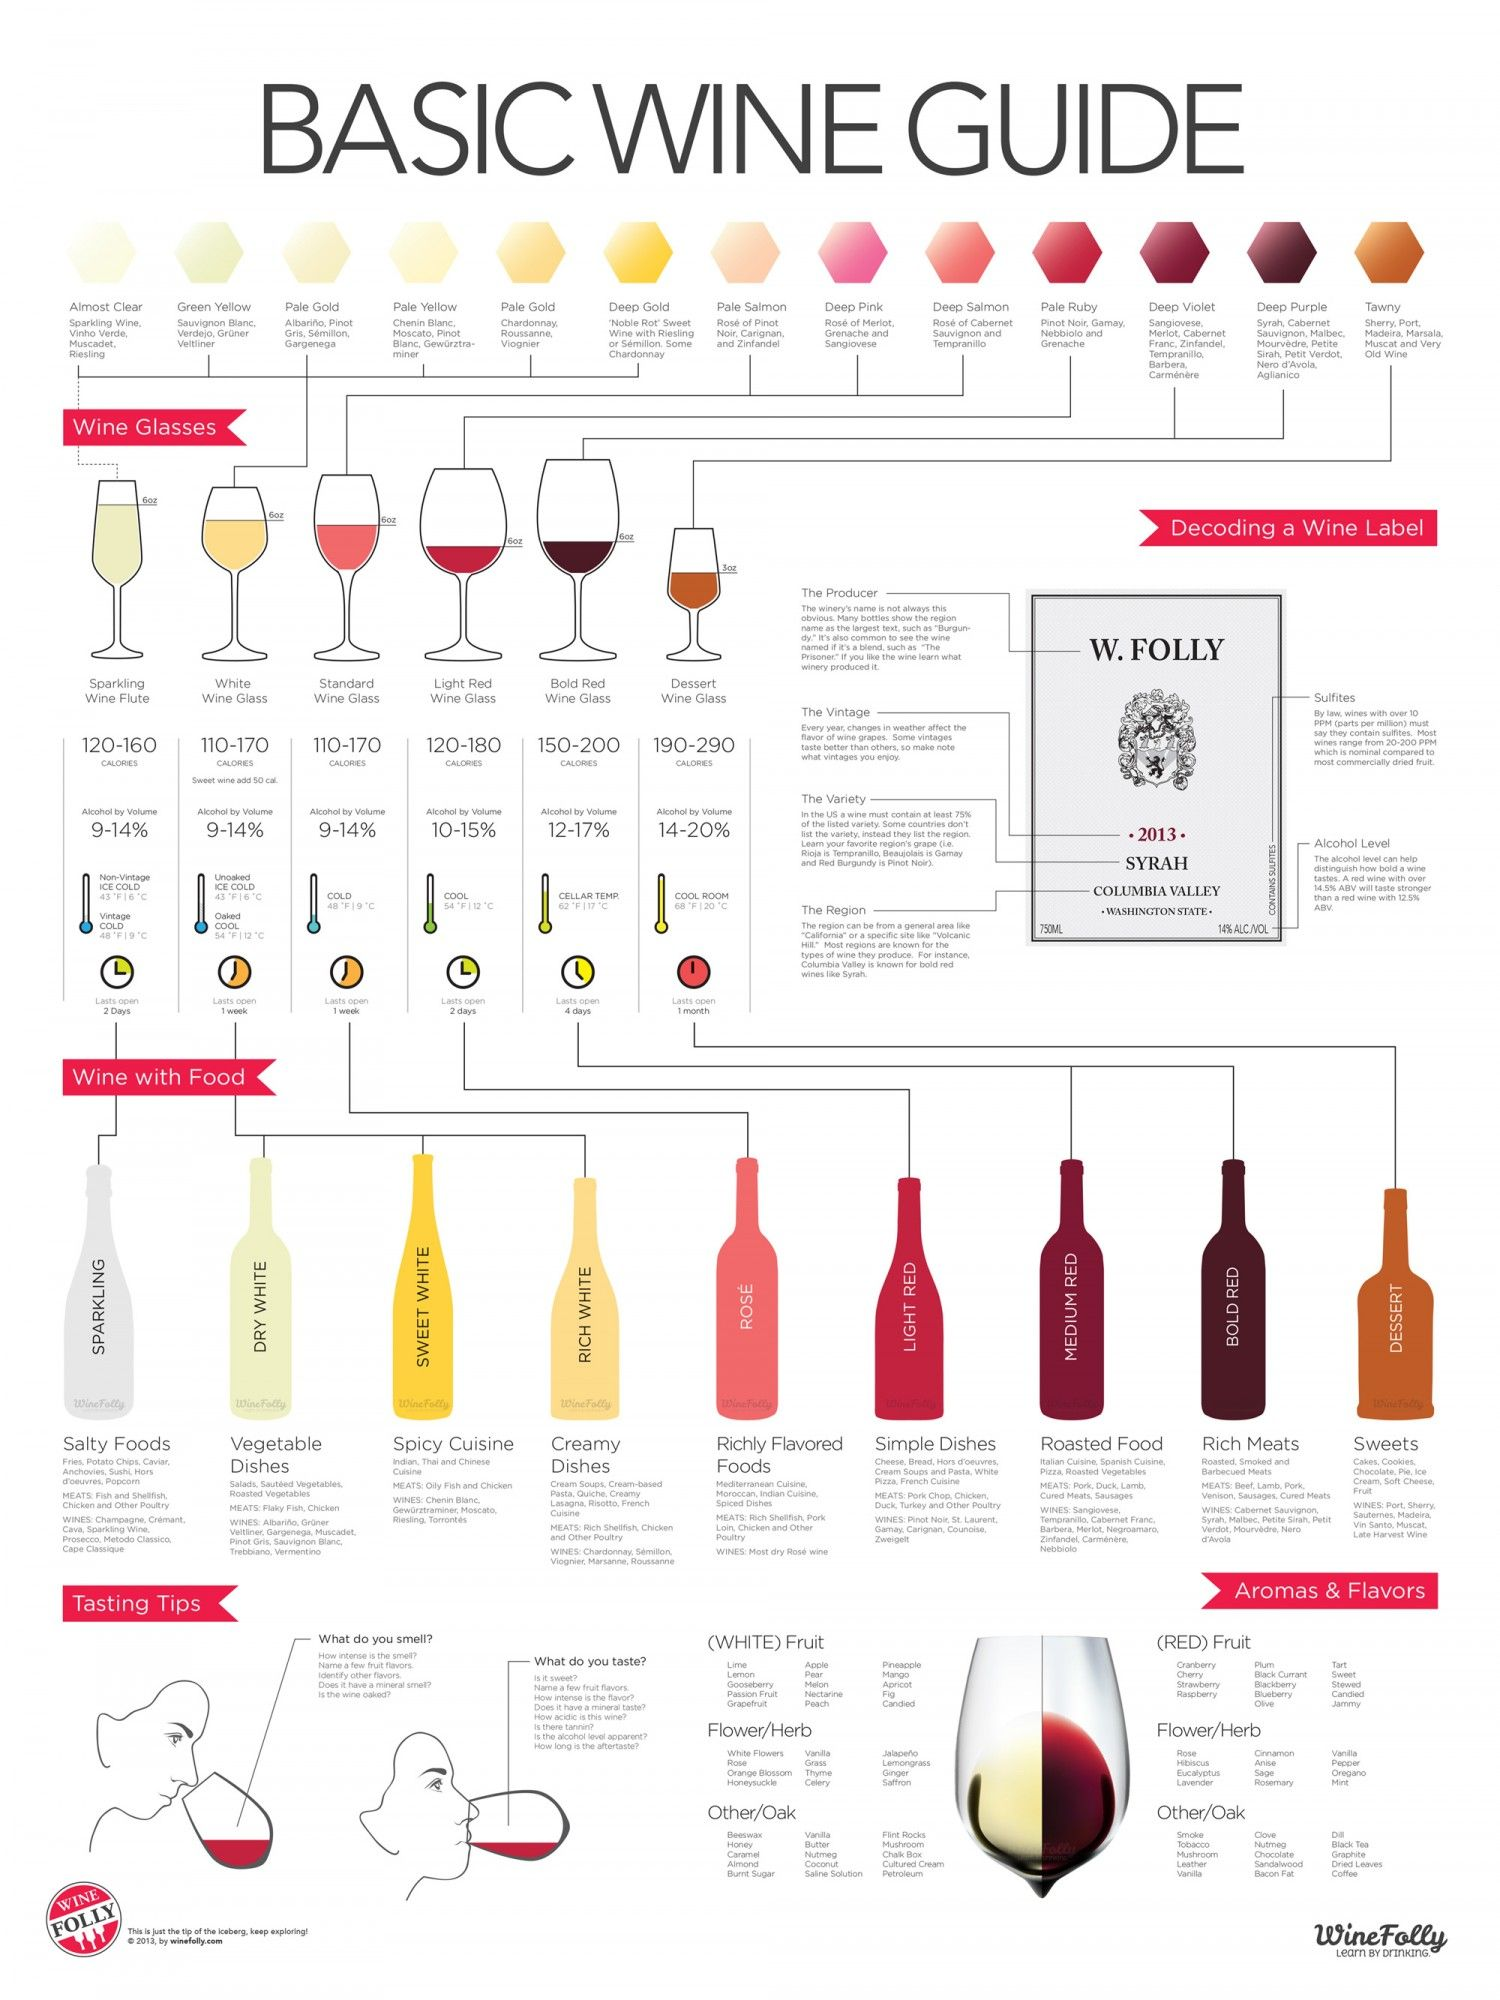 Basic wine guide that   accurate infographic also best pop up dinner party images on pinterest cheese platters rh